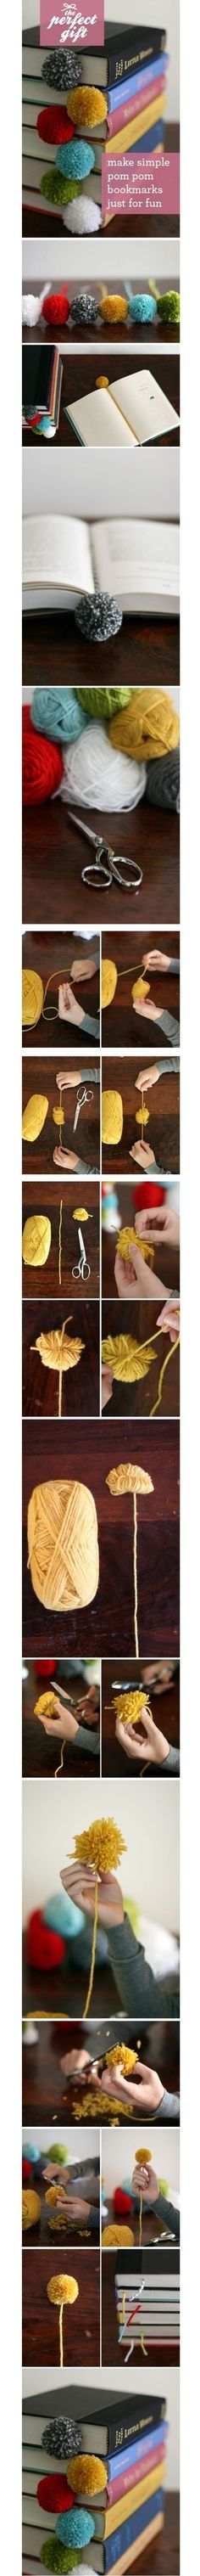 How to make simple pom pom bookmarks just for fun step by step DIY tutorial picture instructions by Mary Smith fSesz Diy Crafts For Teen Girls, Crafts For Kids, Cute Crafts, Crafts To Do, Market Day Ideas, Book Markers, Ideias Diy, Yarn Ball, Diy Art